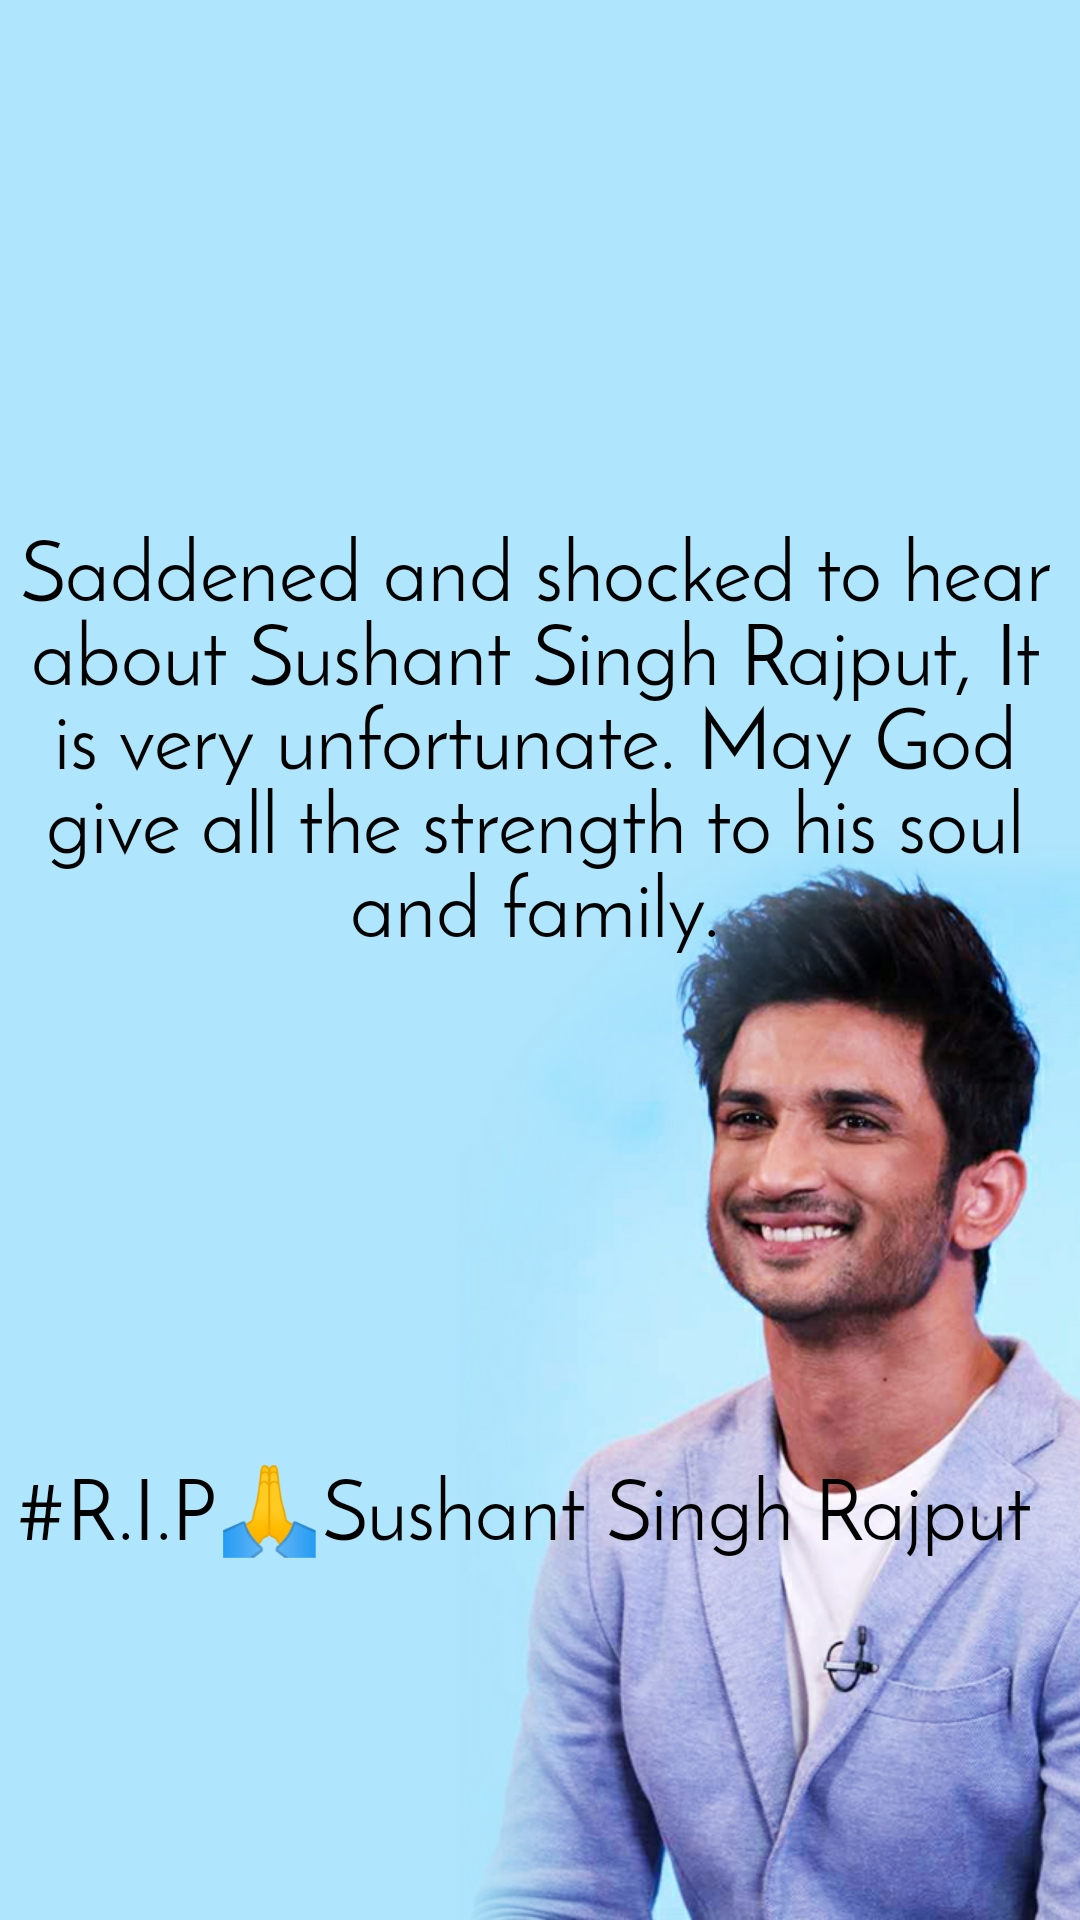 Saddened and shocked to hear about Sushant Singh Rajput, It is very unfortunate. May God give all the strength to his soul and family.       #R.I.P🙏Sushant Singh Rajput